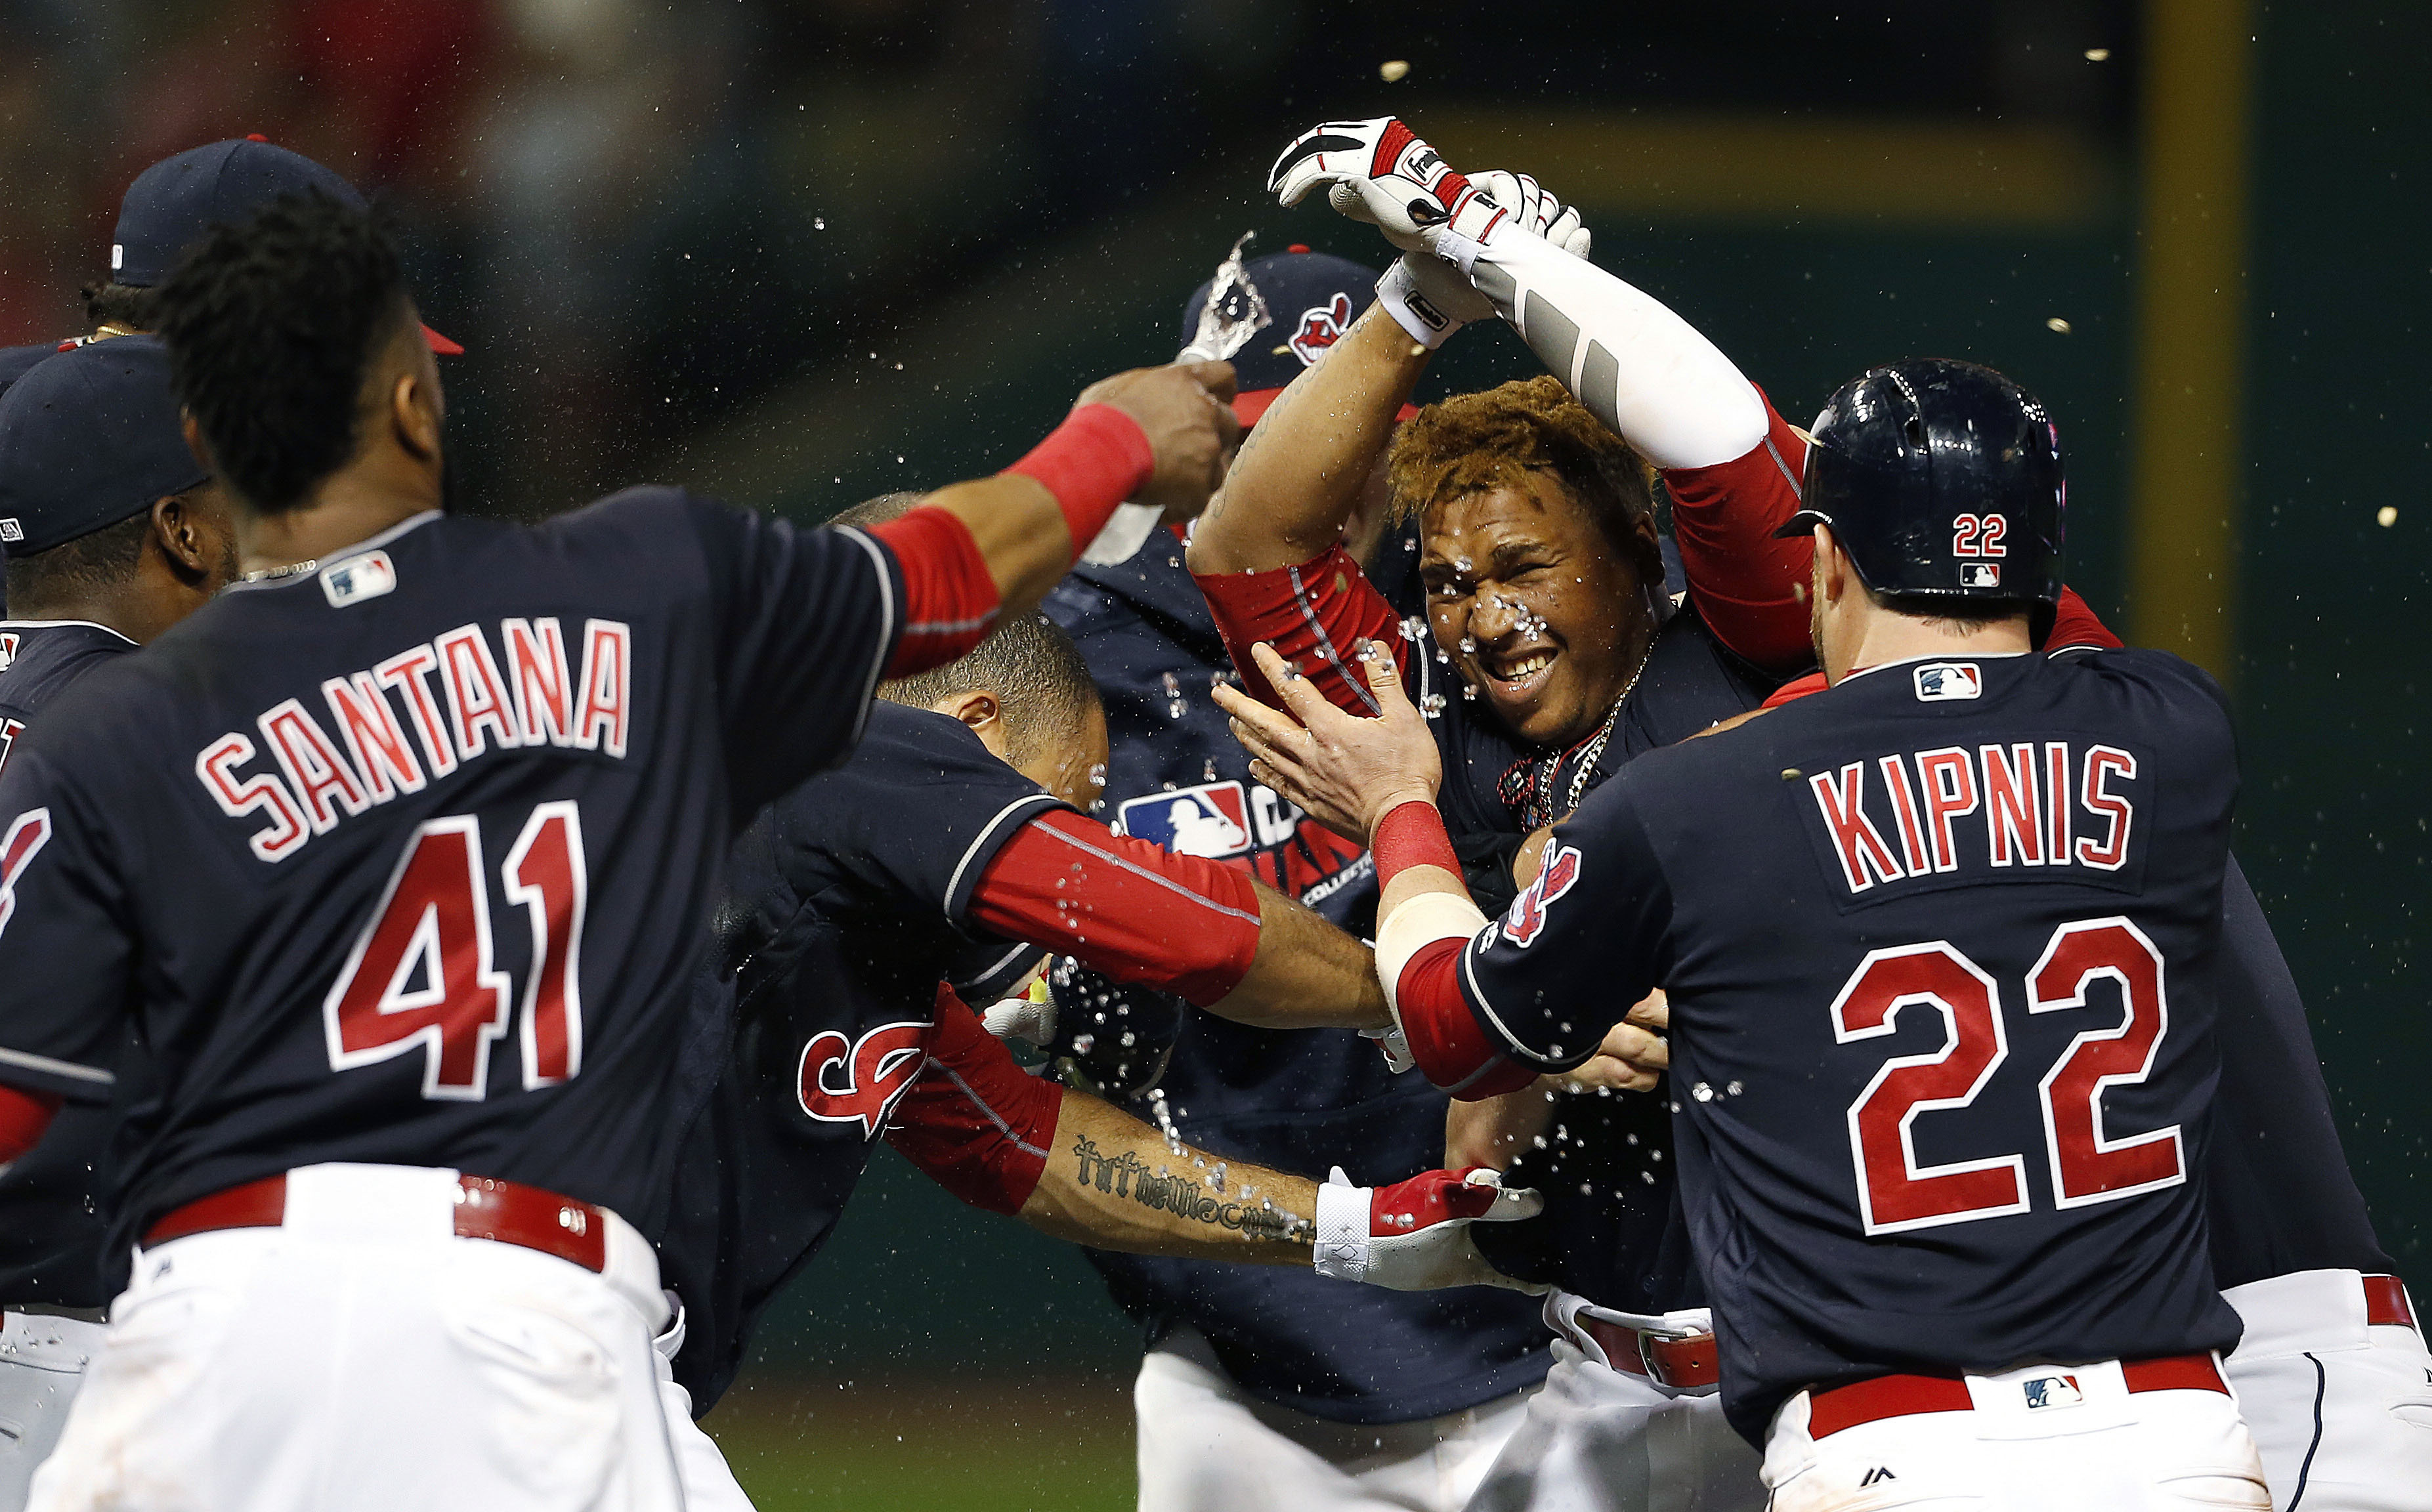 Cleveland Indians' Jose Ramirez, second from right, is mobbed by teammates after hitting a game winning single off Detroit Tigers relief pitcher Justin Wilson during the tenth inning of a baseball game Saturday, Sept. 17, 2016, in Cleveland. The Indians w